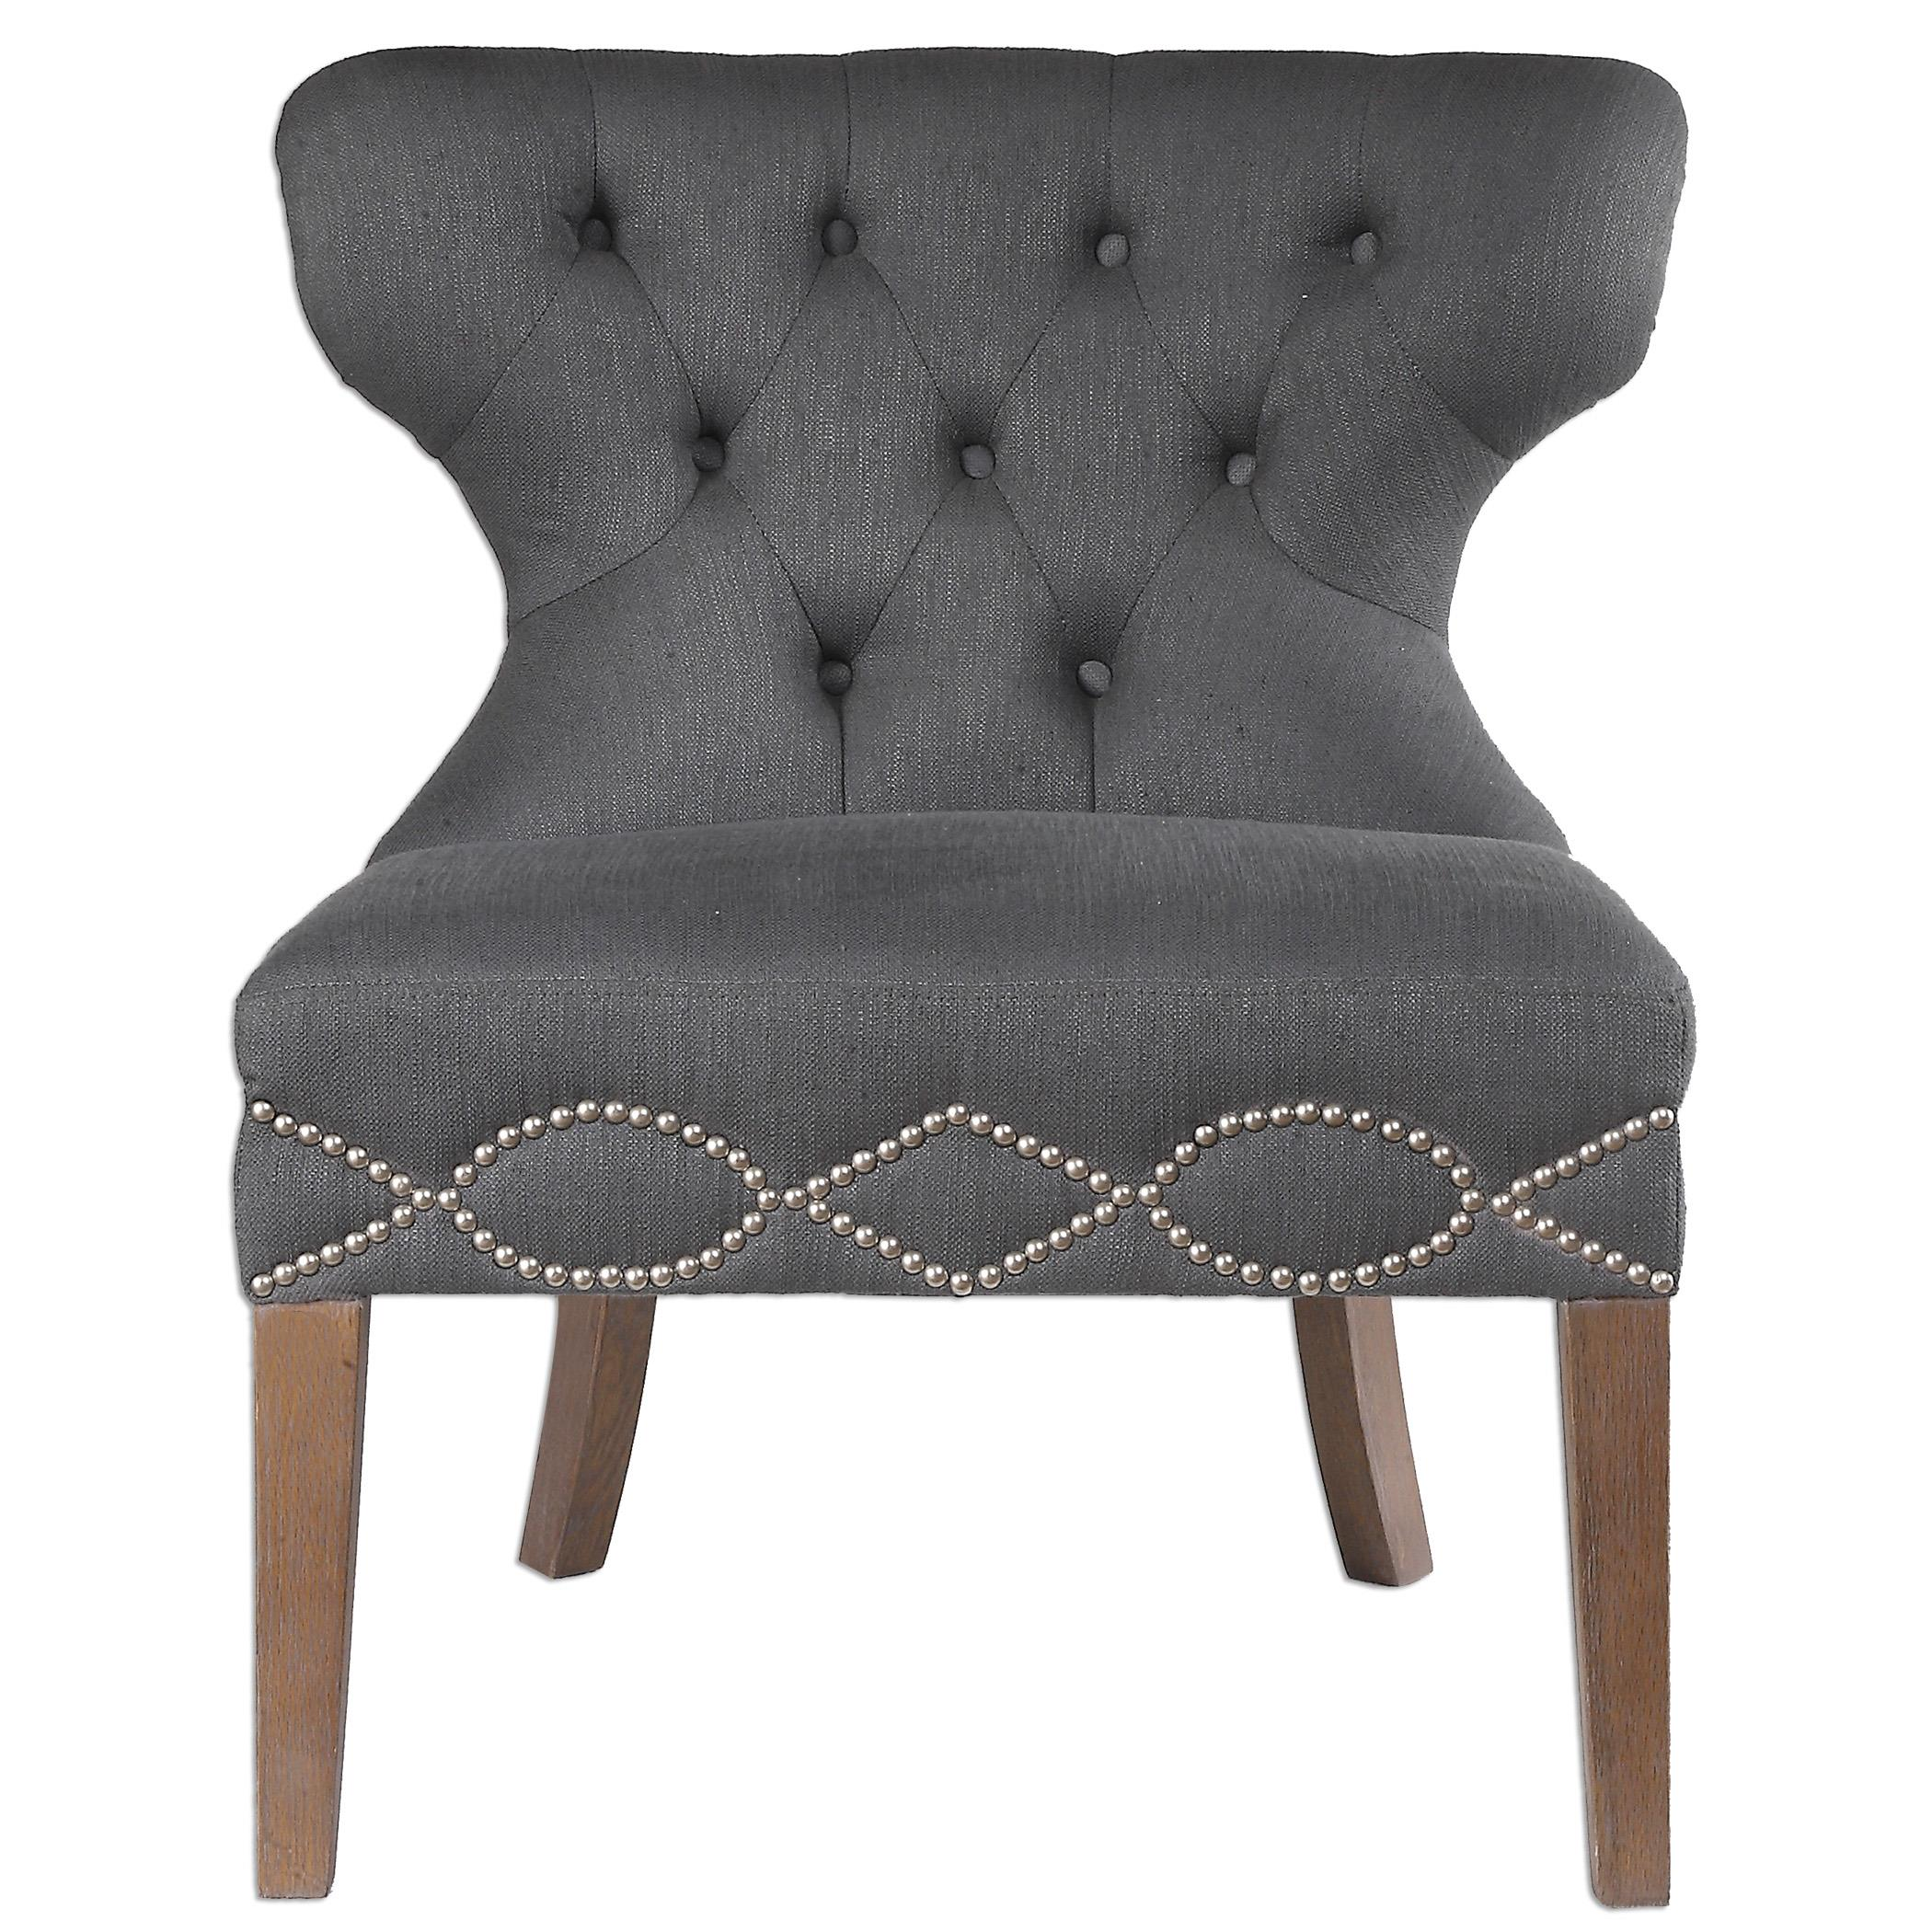 Uttermost Accent Furniture Shafira Gray Armless Chair - Item Number: 23241